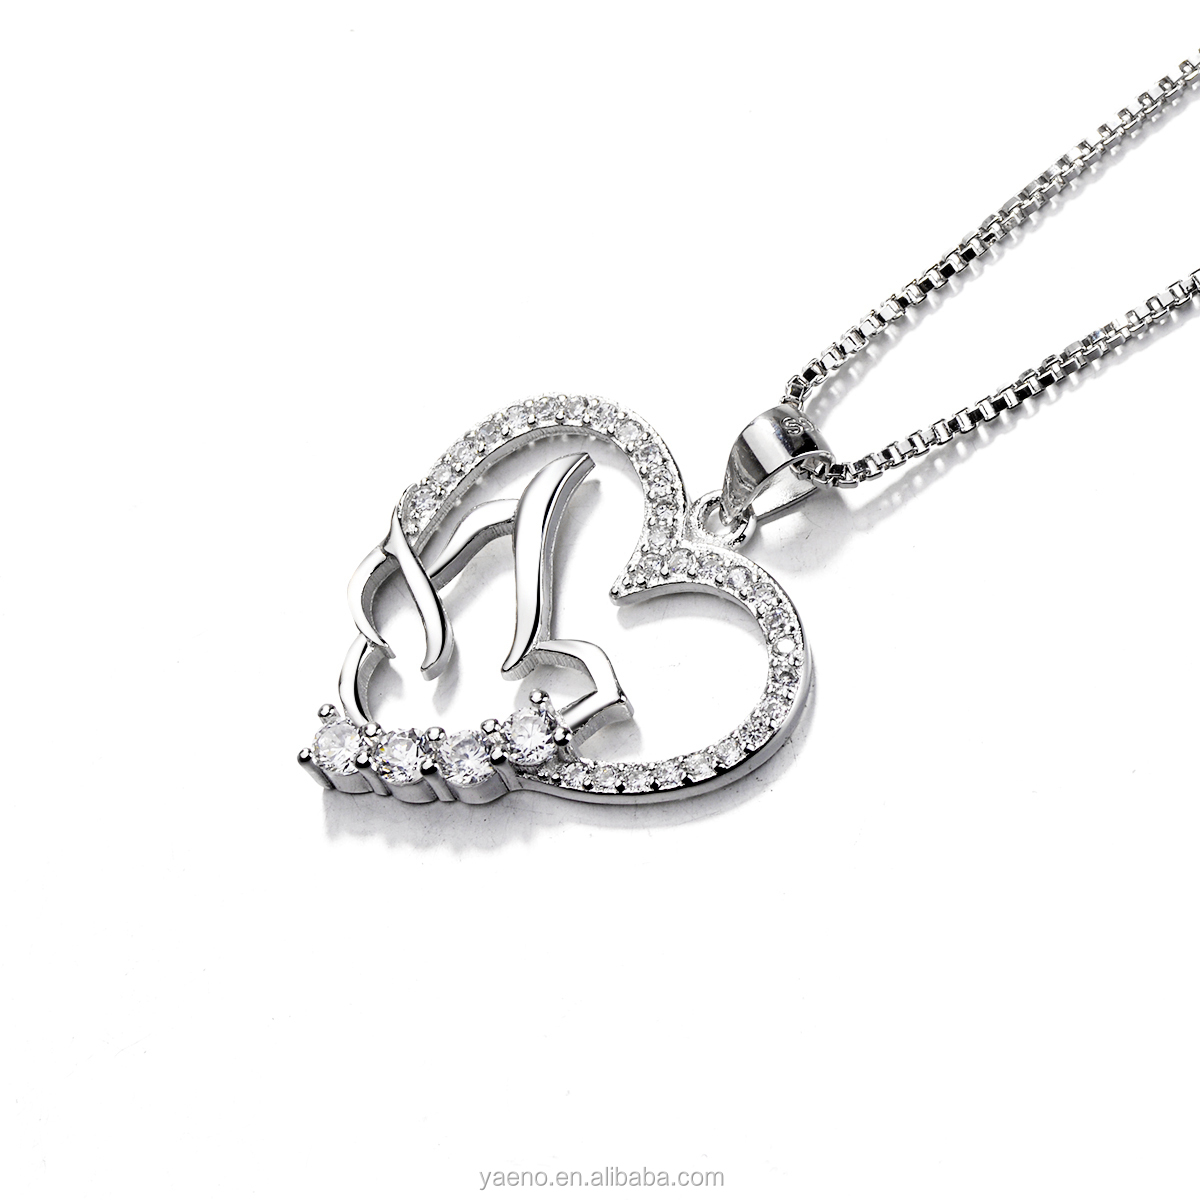 Real 925 Sterling Silver Jewelry Love Heart Pendant